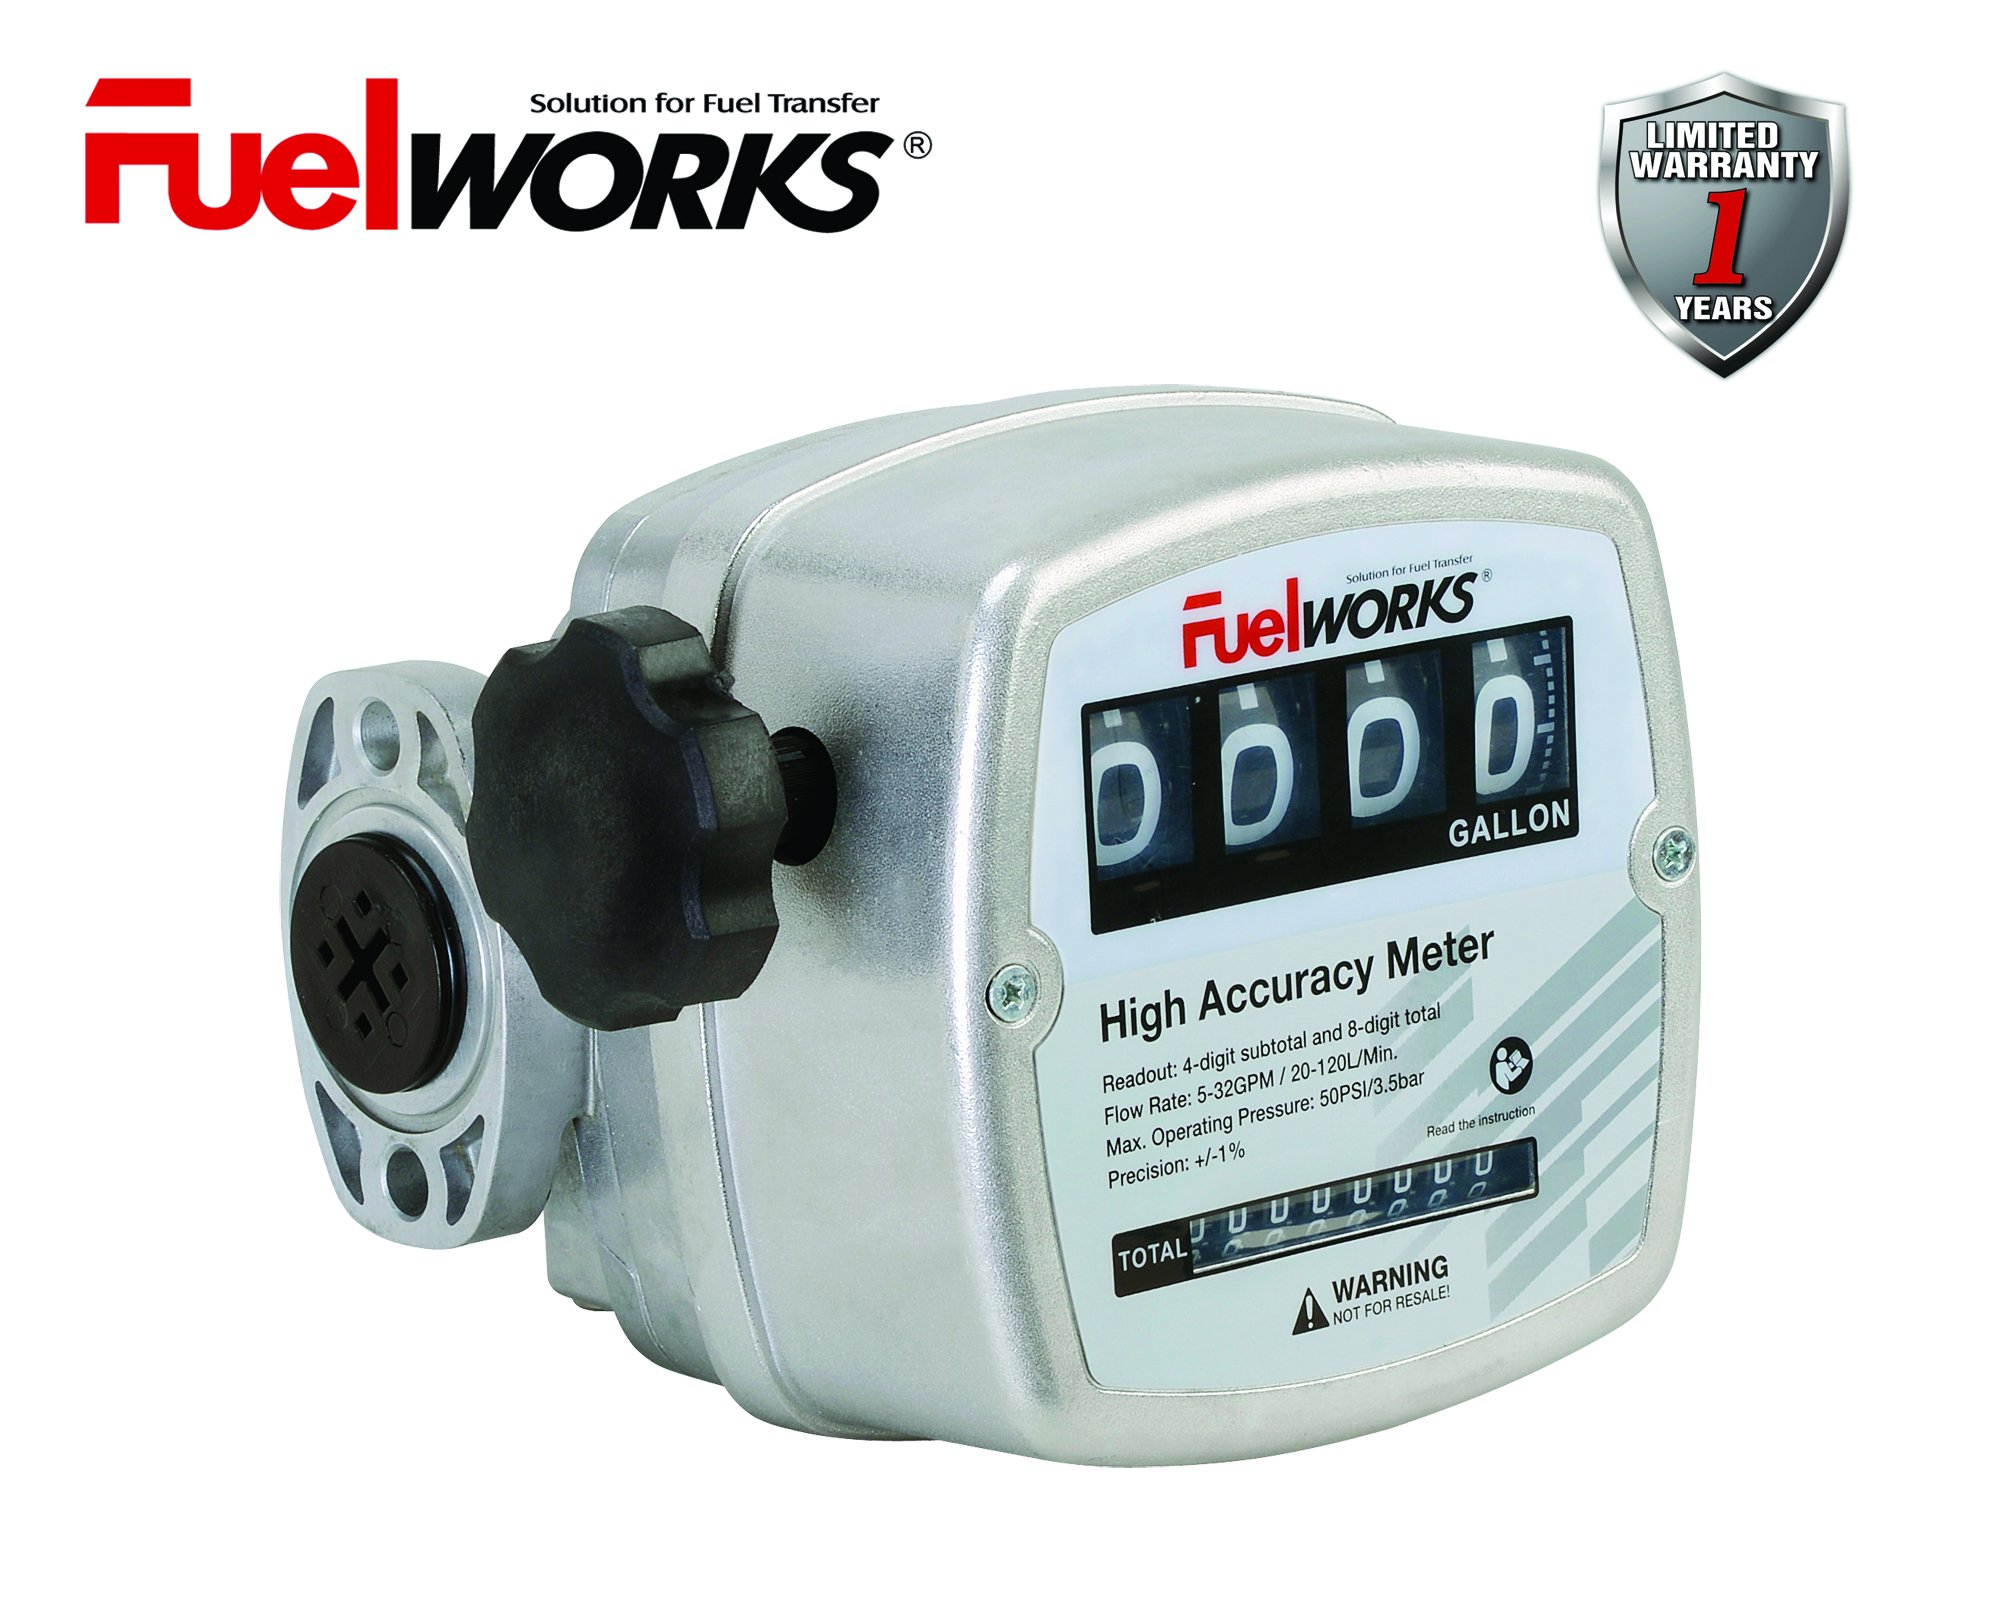 FUELWORKS Oval Gear Inline Meter for Diesel Fuel with 3-26 GPM, 3/4'' Inlet Size, 1 Year Warranty